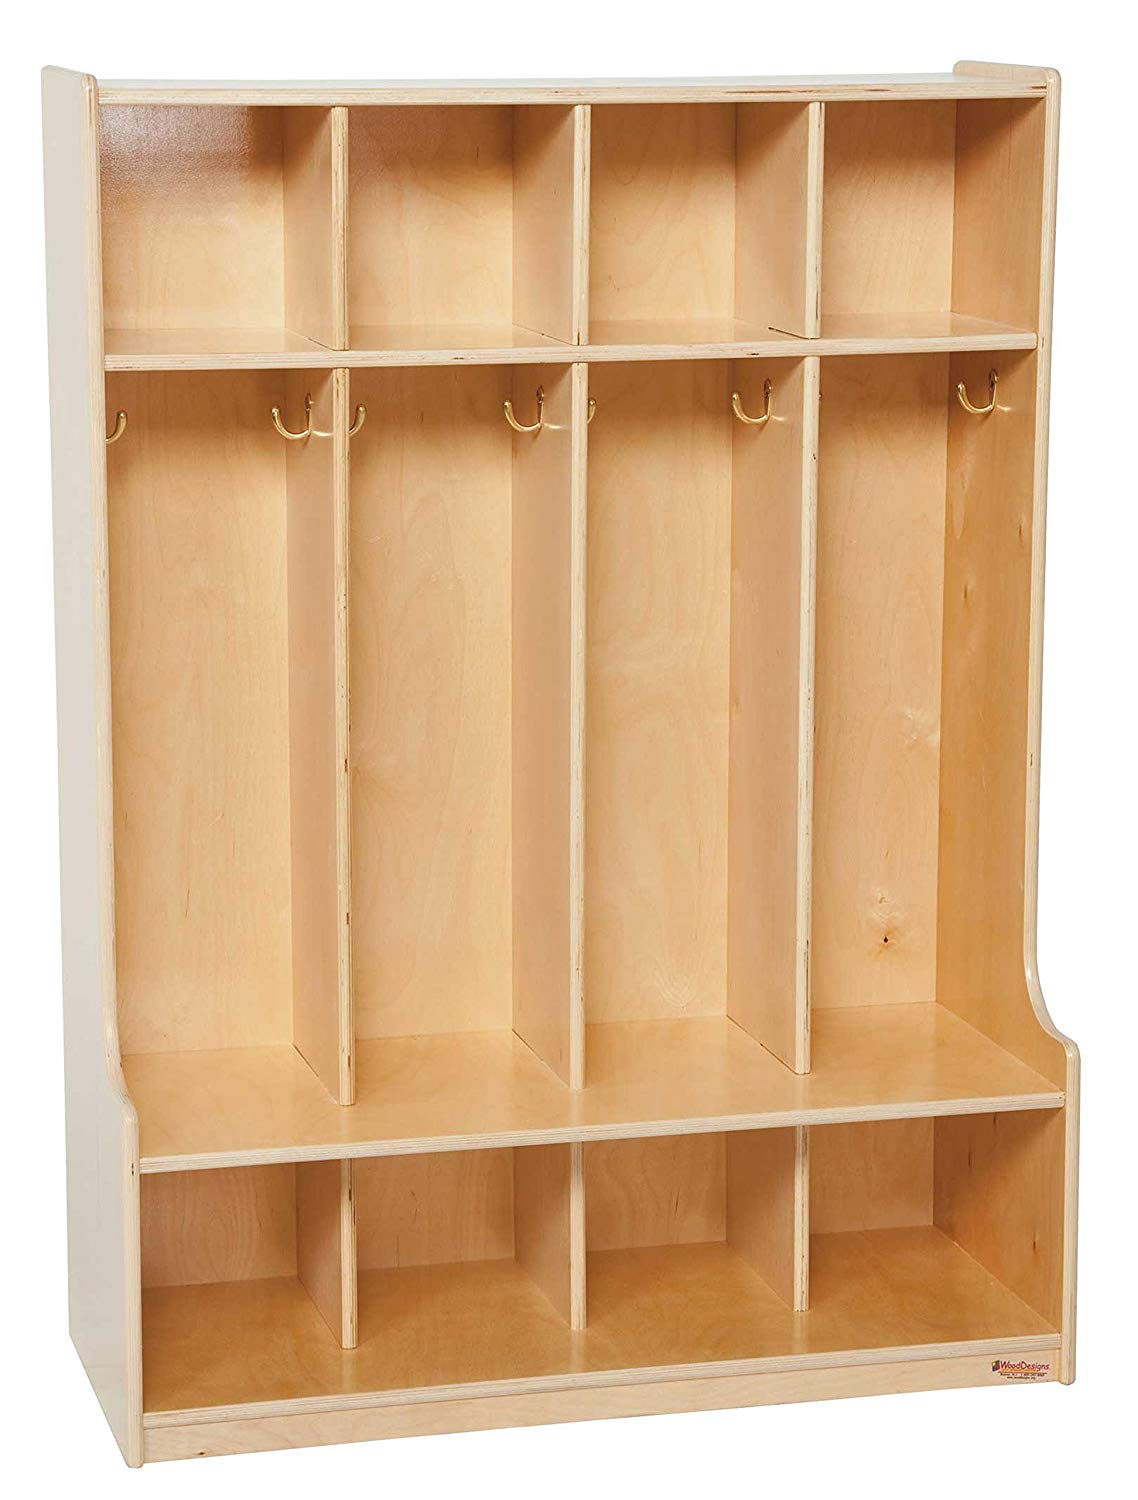 "Wood Designs 51004 4 Section Seat Locker, 49"" Height, 18"" Width, 51.5"" Length"